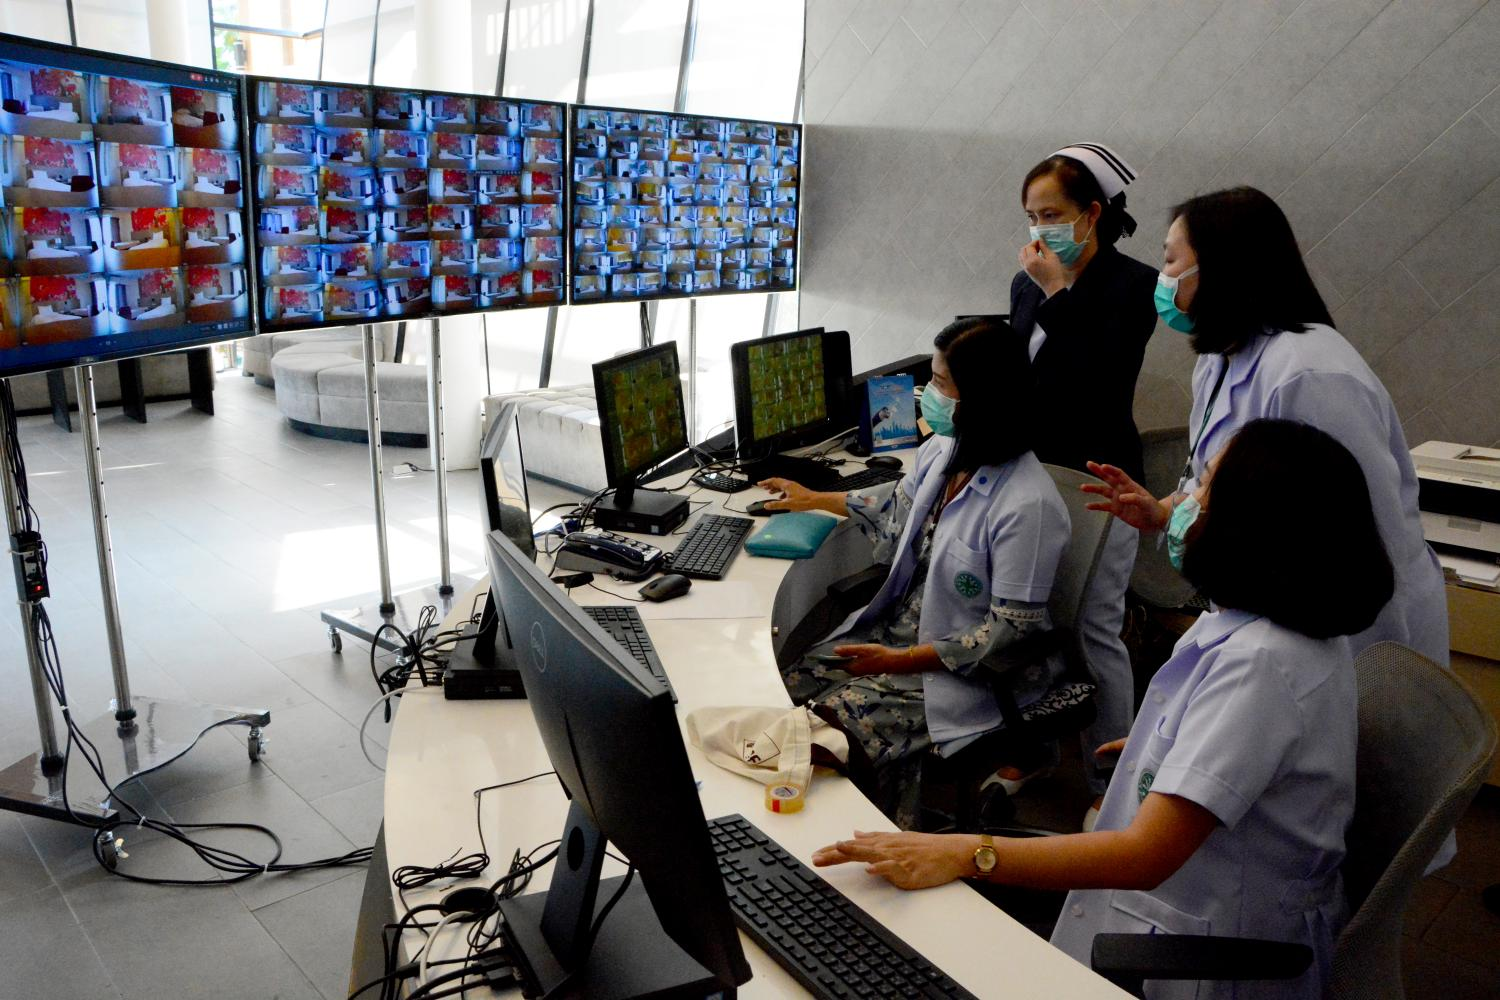 Keeping an eye out: Thammasat University's Hospital opens its first field hospital converted from a dormitory on its Rangsit campus. Patients will be confined to their rooms and monitored on CCTV by the medical team.